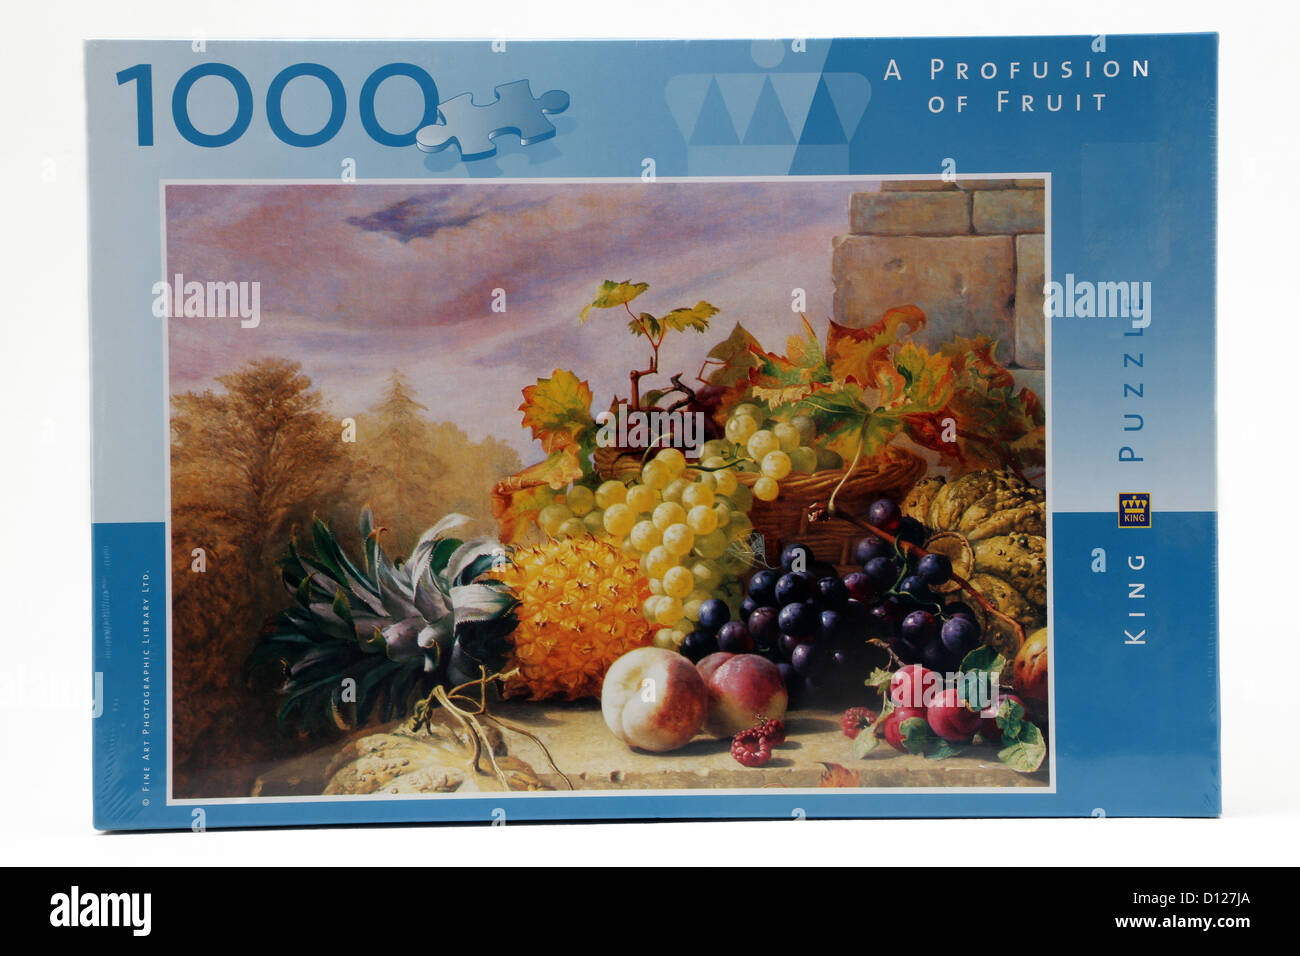 1000 Piece Jigsaw Puzzle Of Fruit - Stock Image